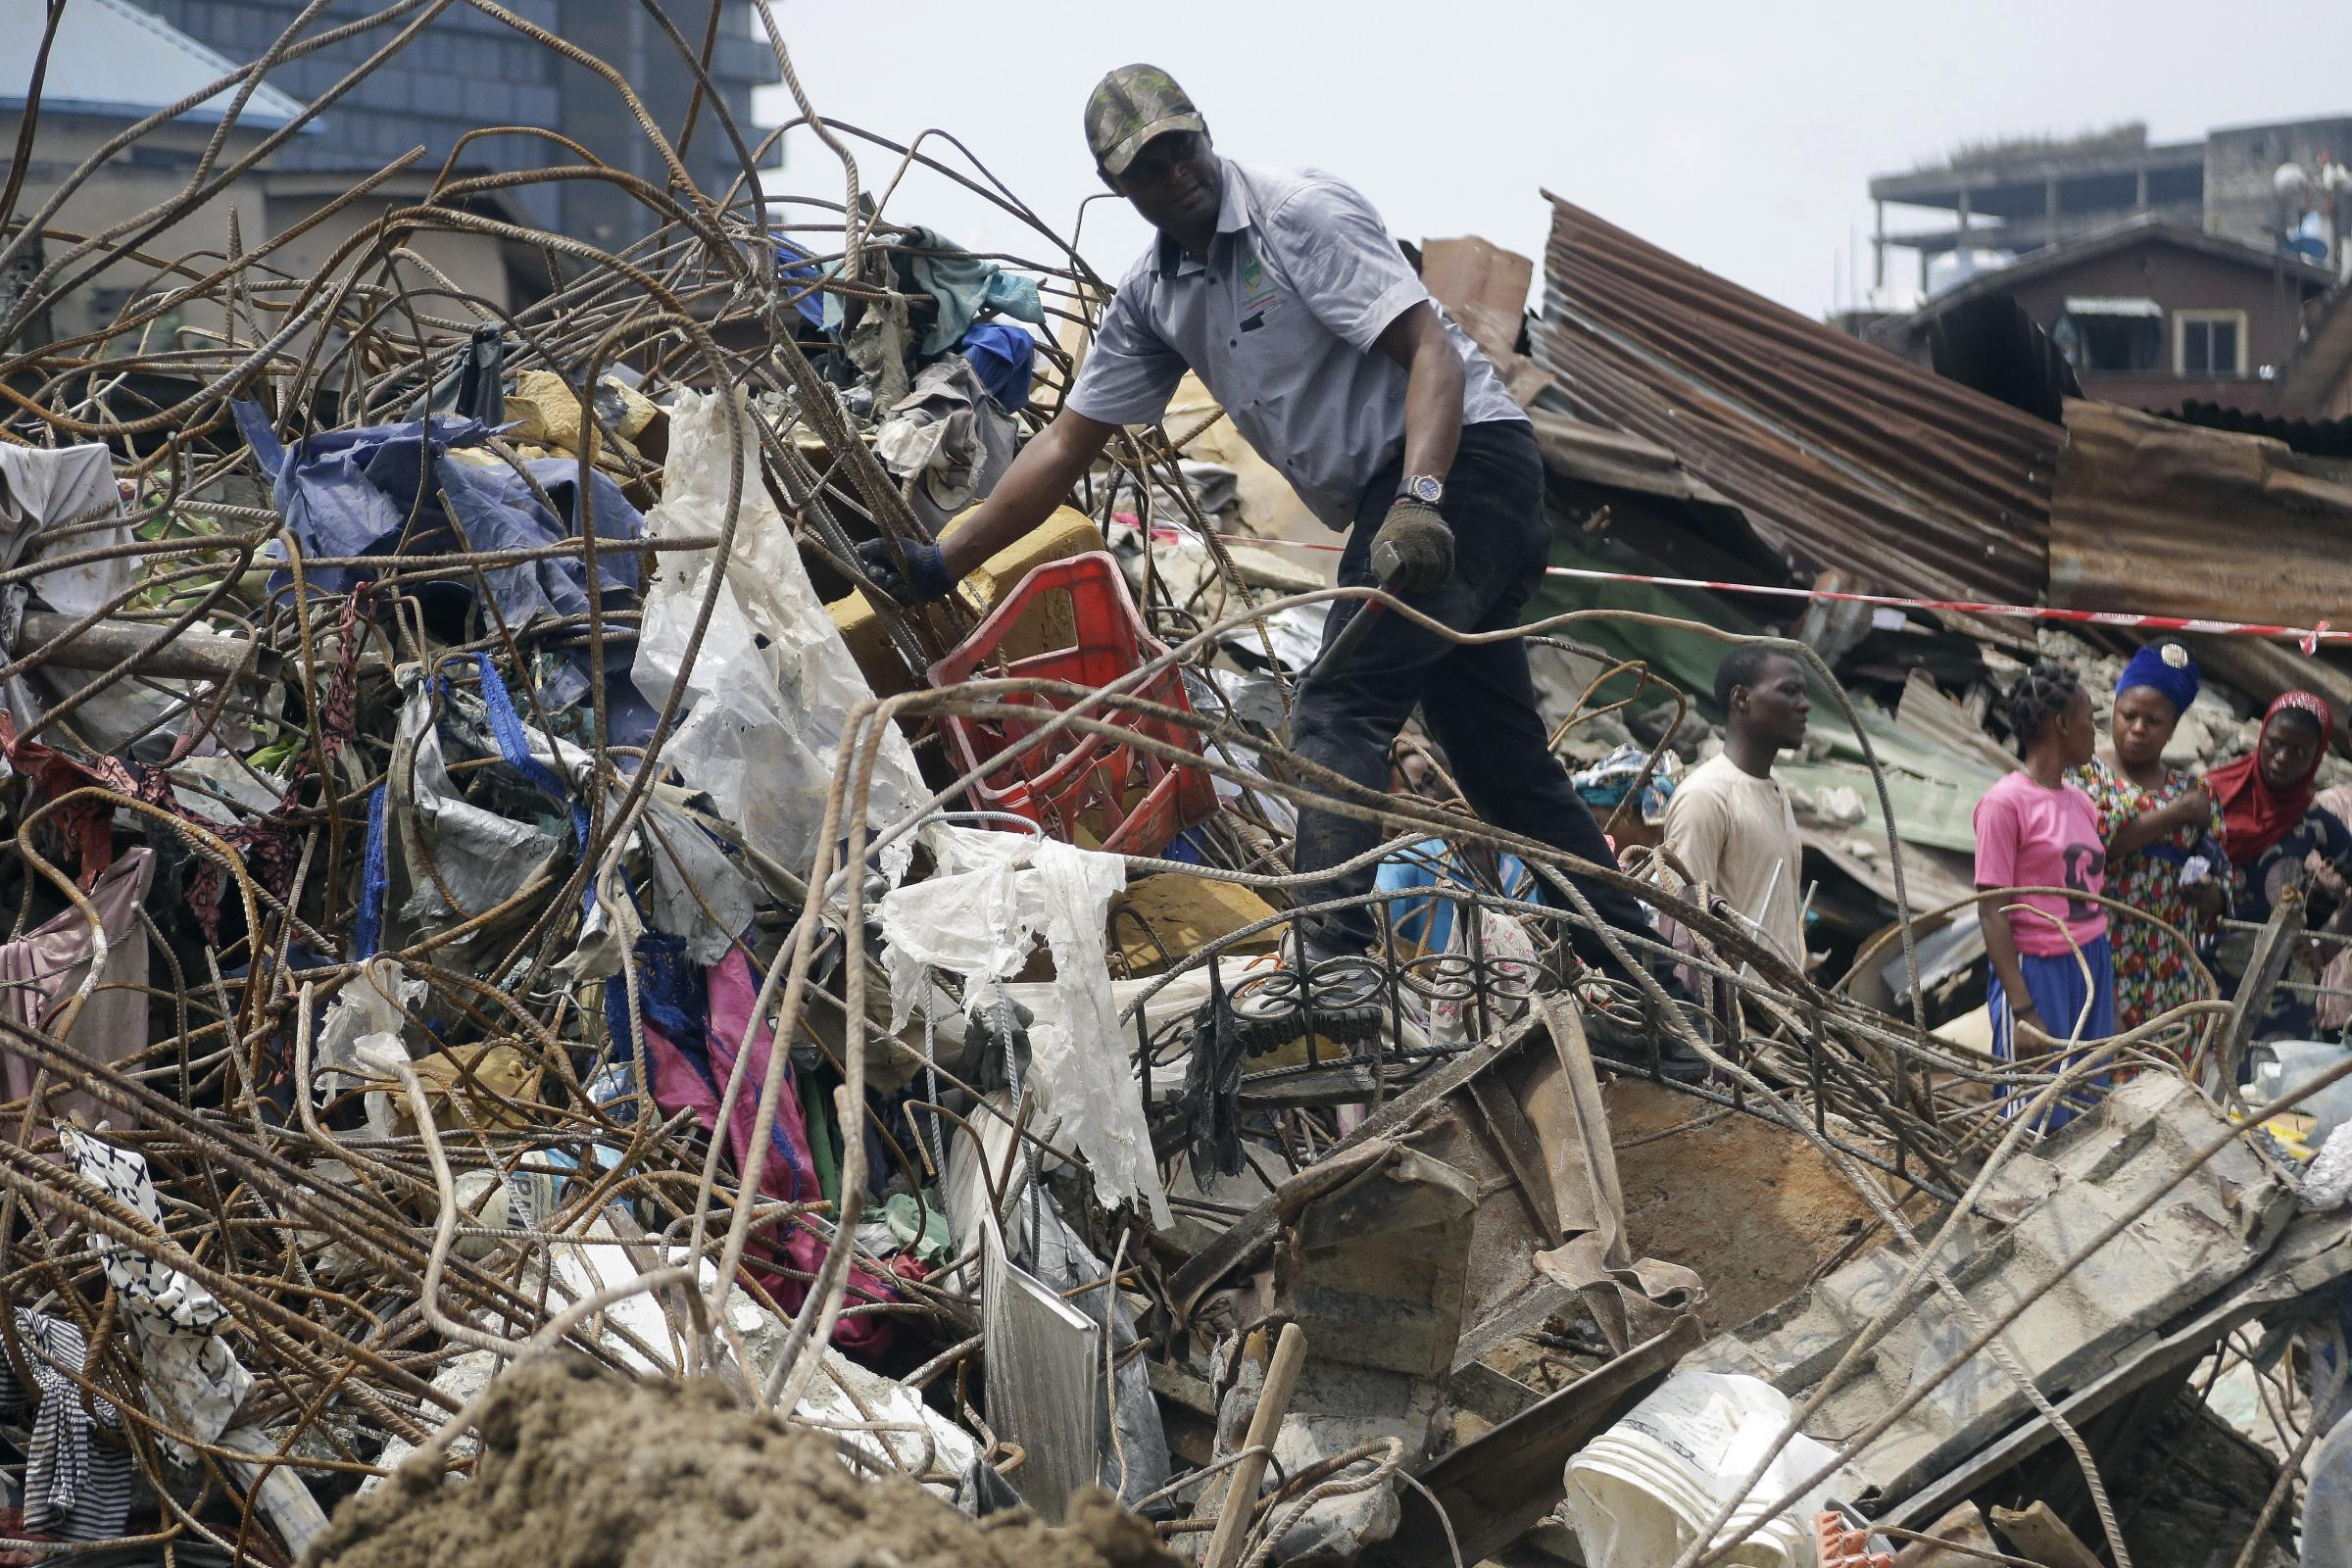 The wreckage of the building in Lagos